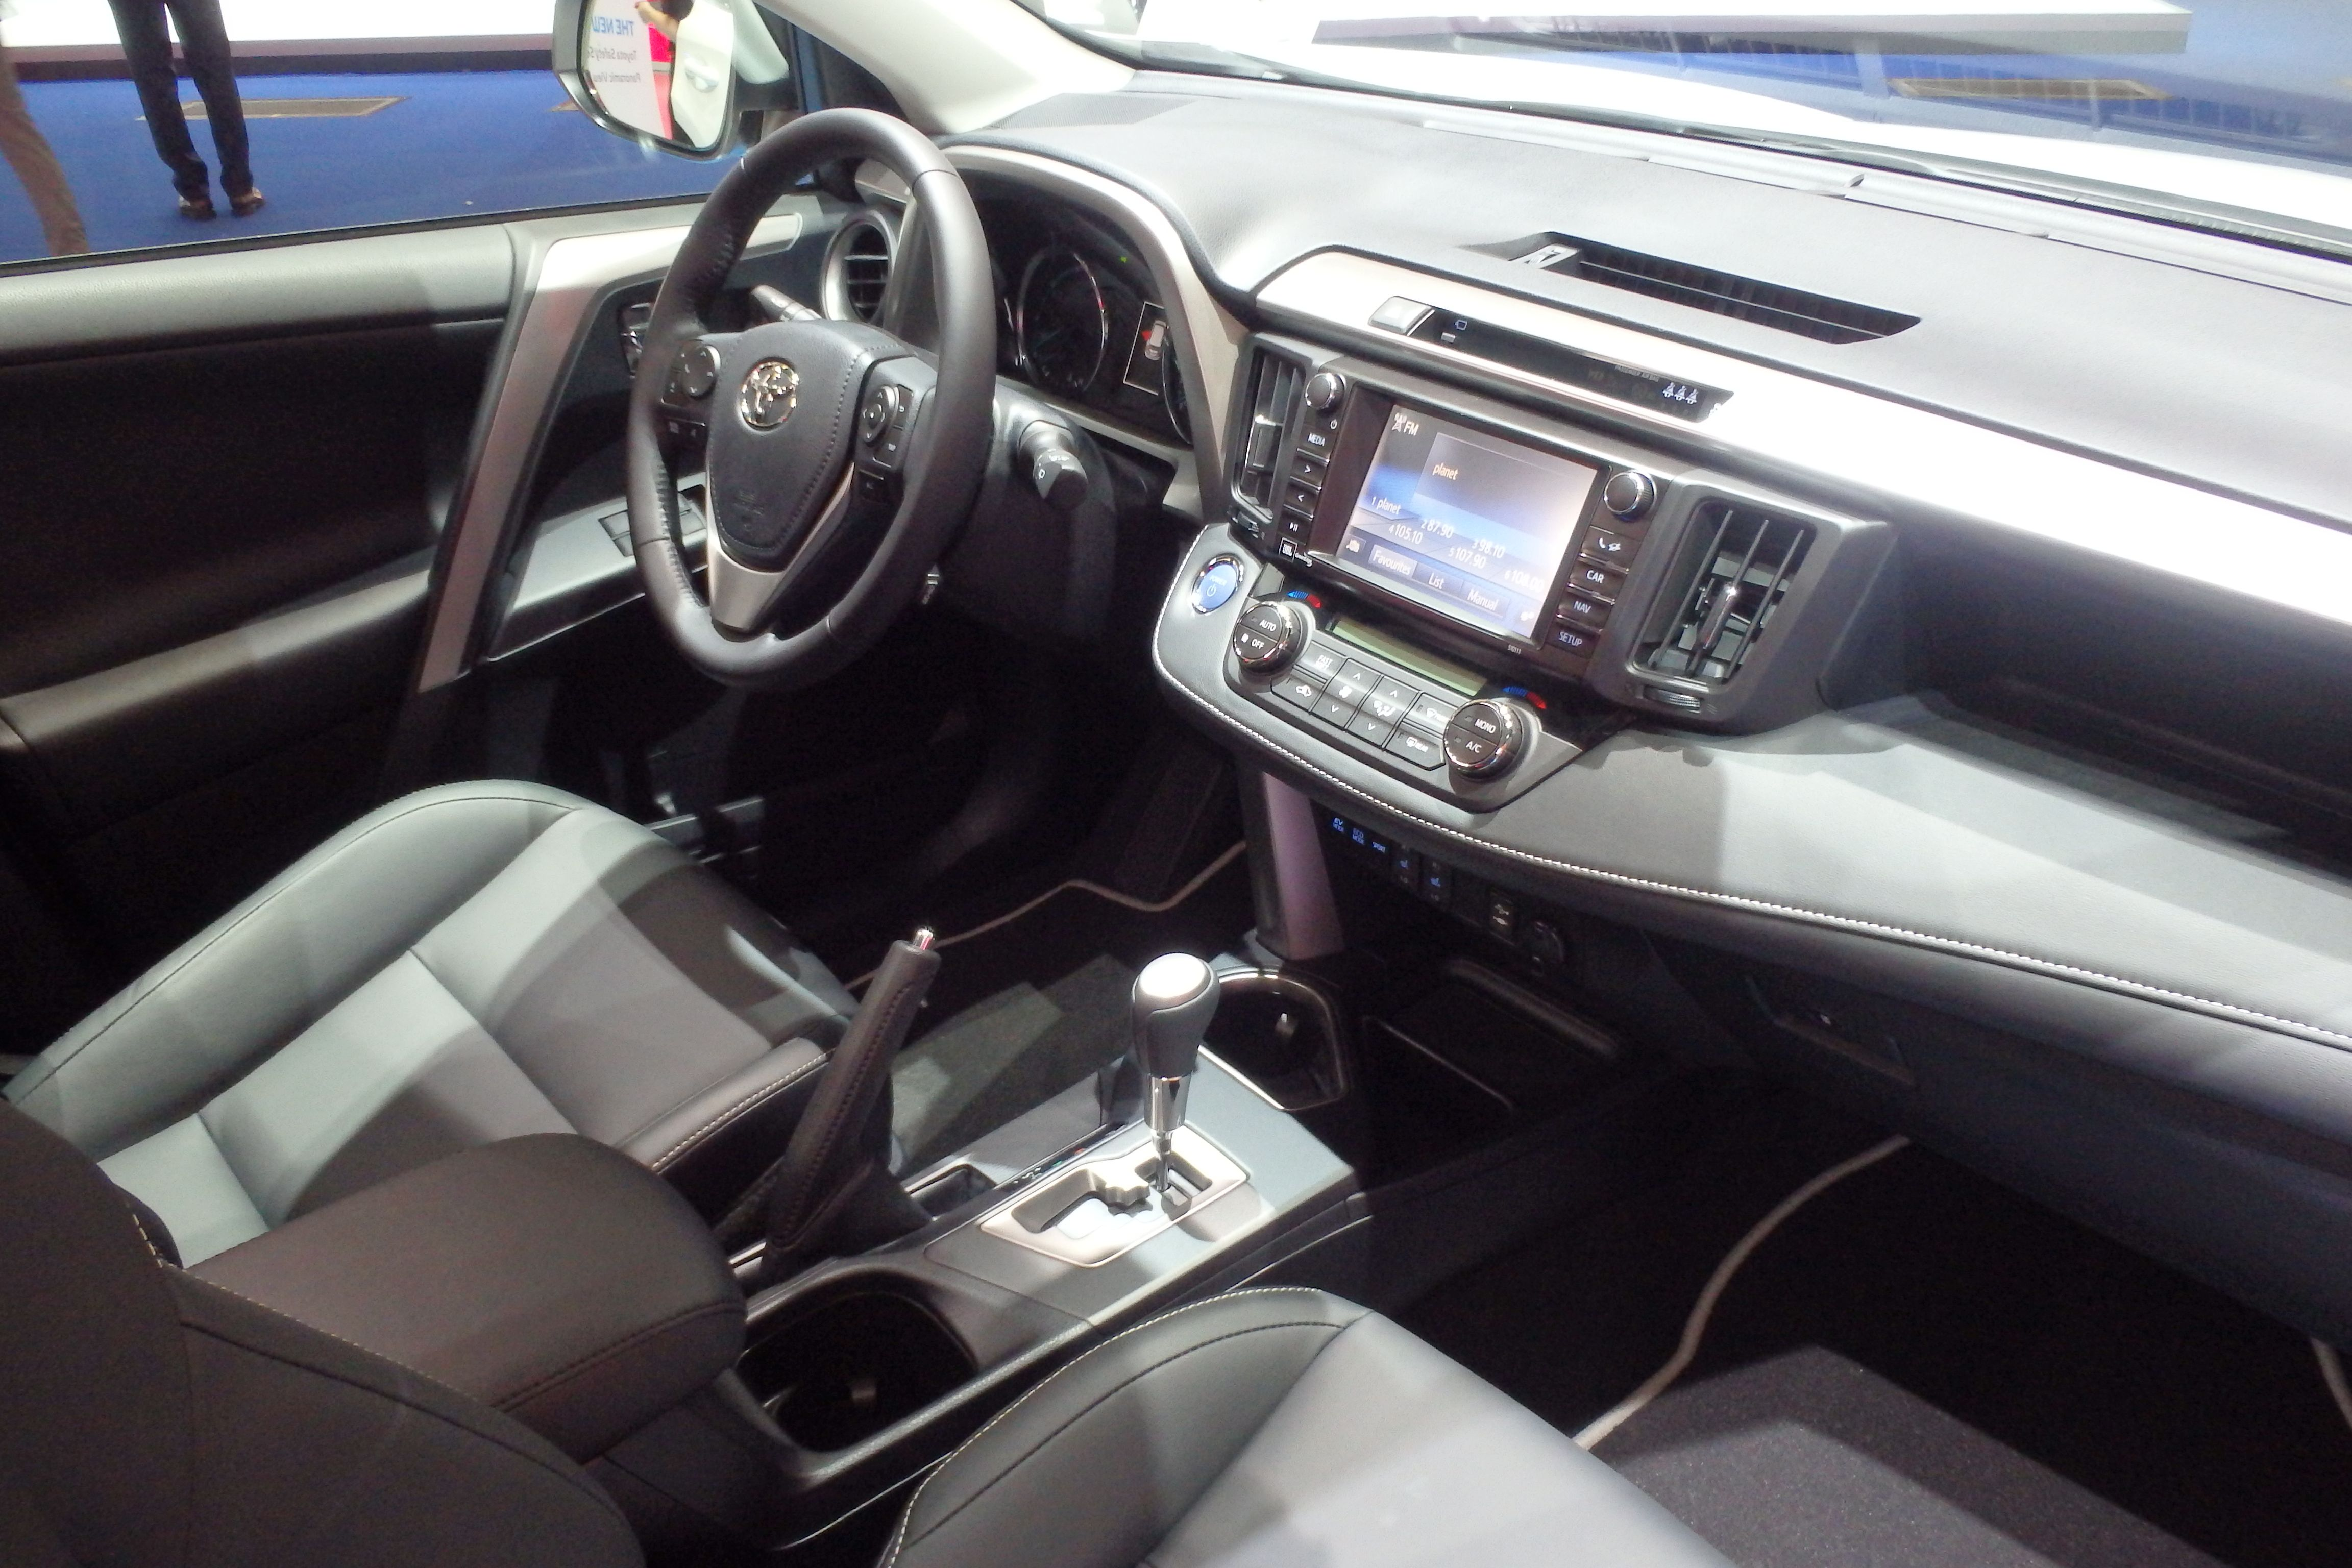 The 2016 Toyota RAV4 Interior Is Shown At The Frankfurt Motor Show, Adding  Toyota Hybrid